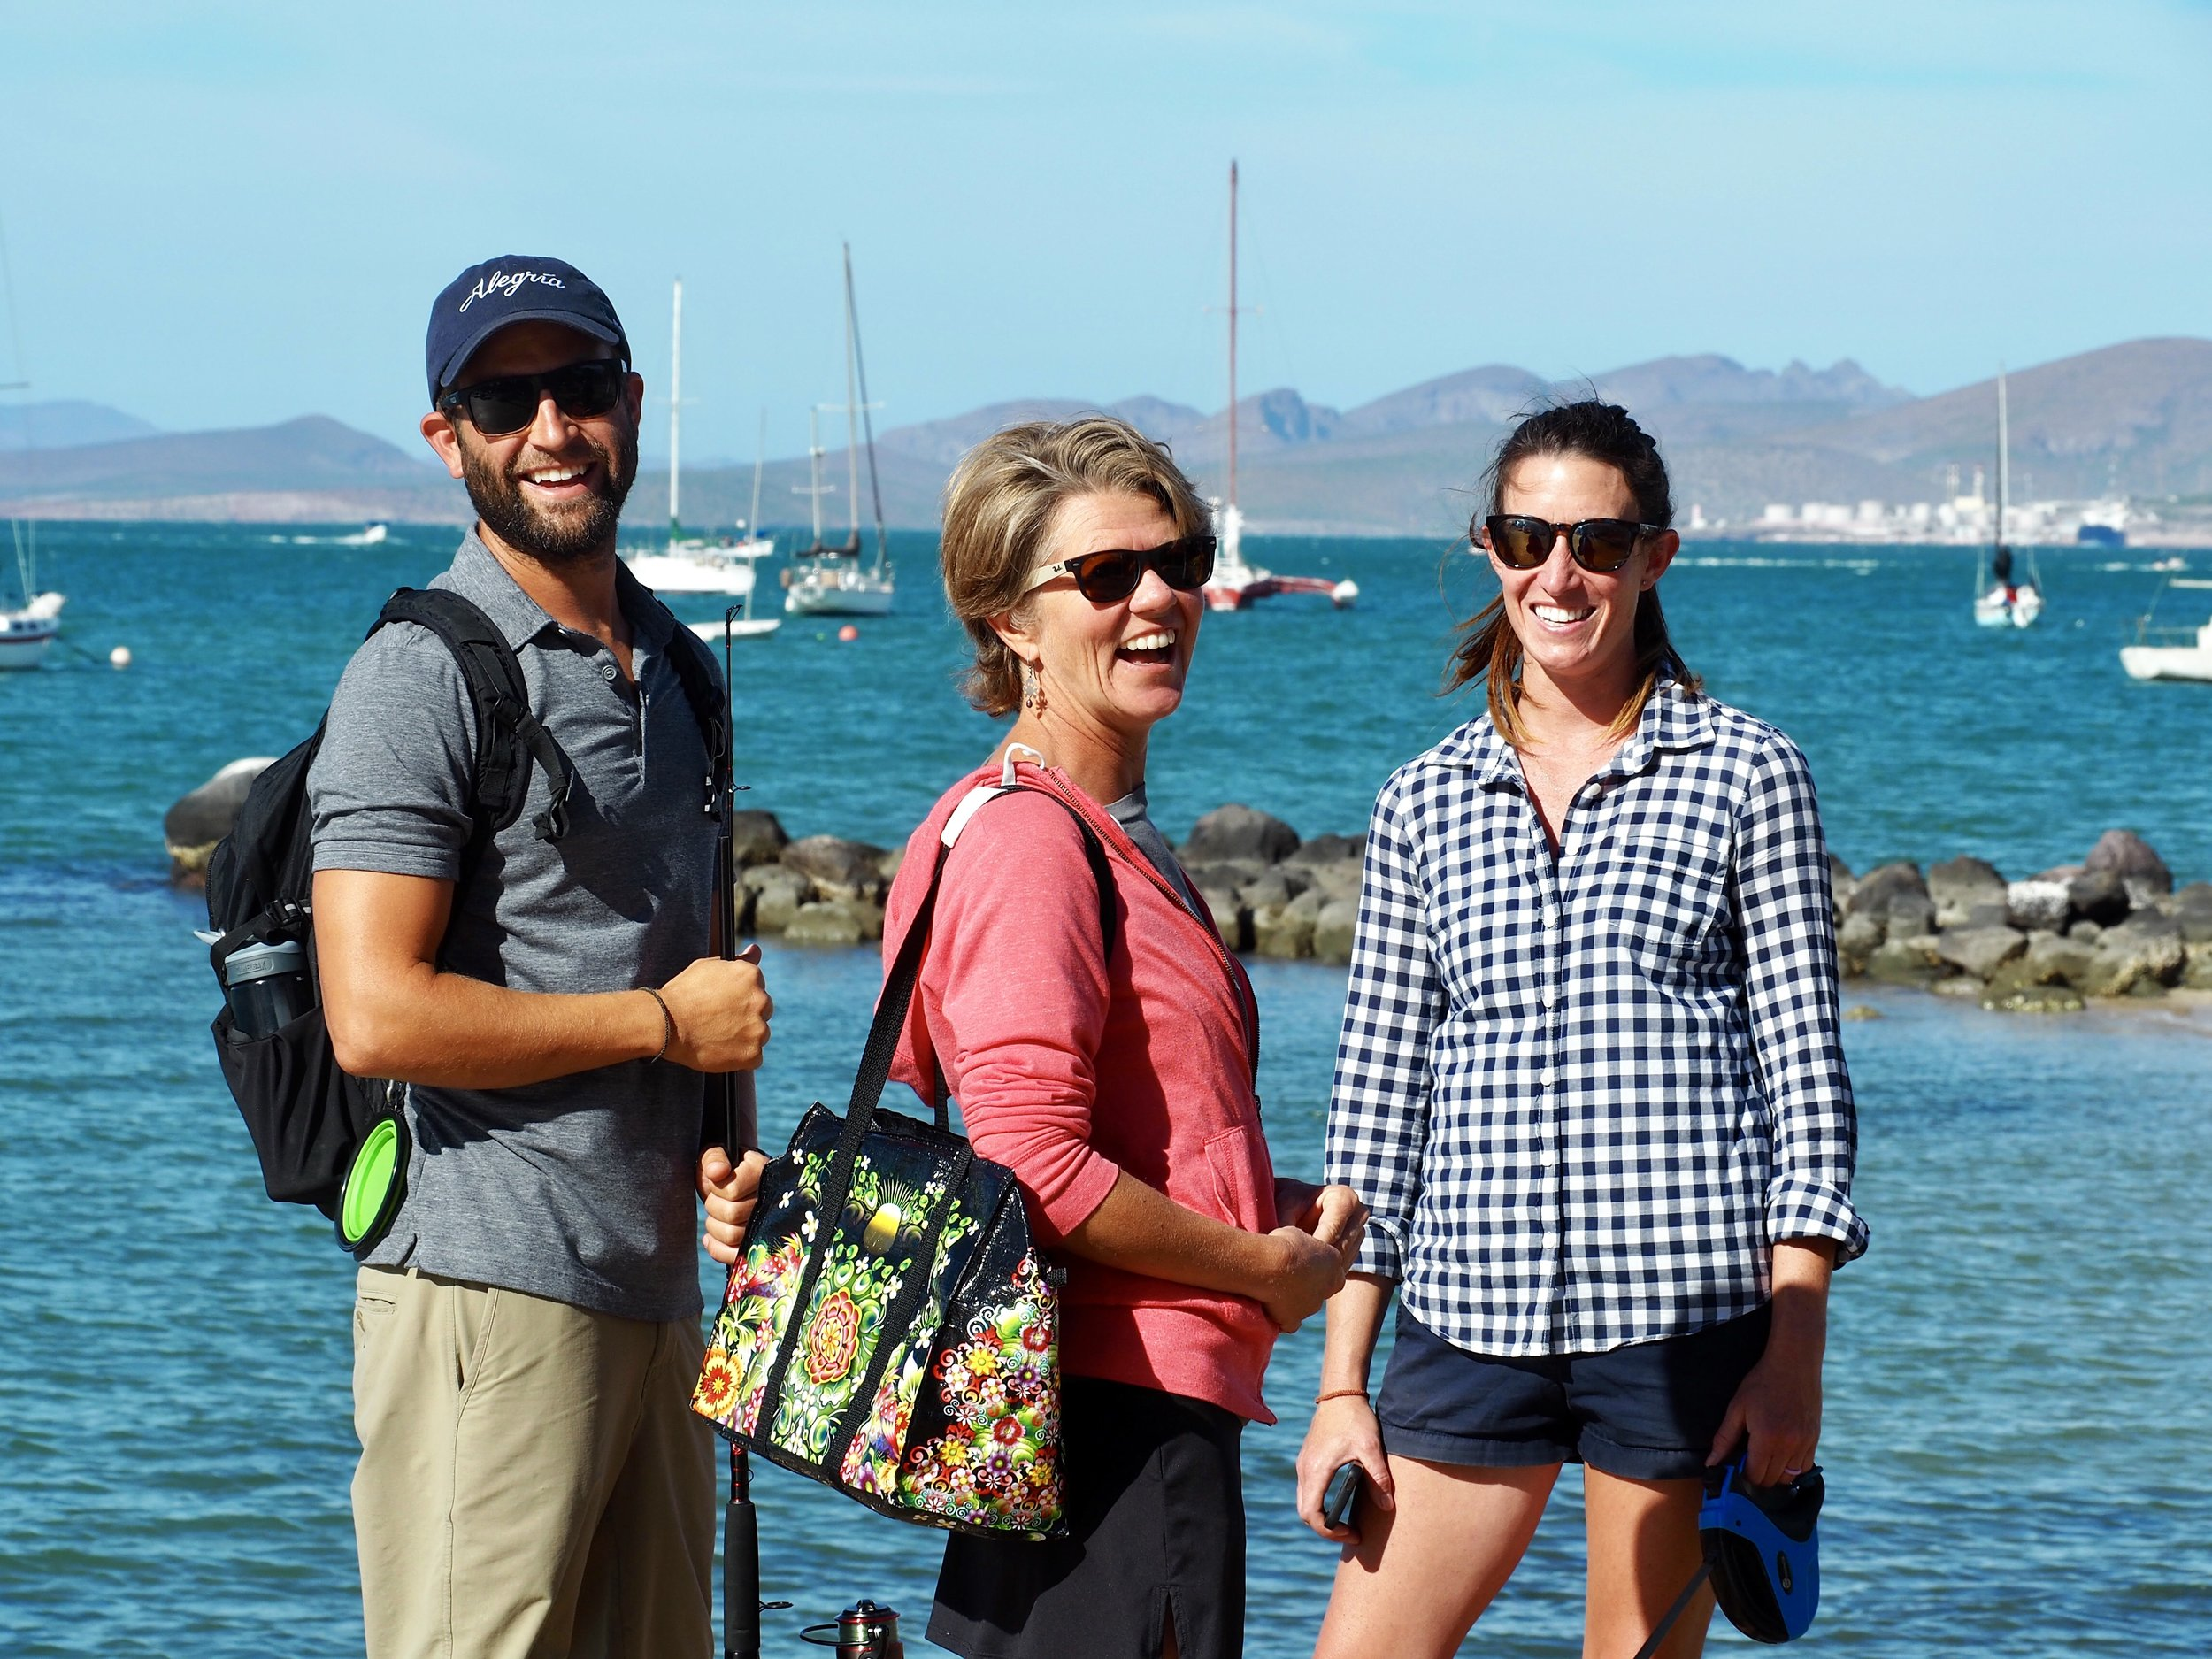 WIth Mike and Katie of  SV Allegría  along the La Paz Malecón. We spent the first several weeks anchored where the other sailboats are in the background.